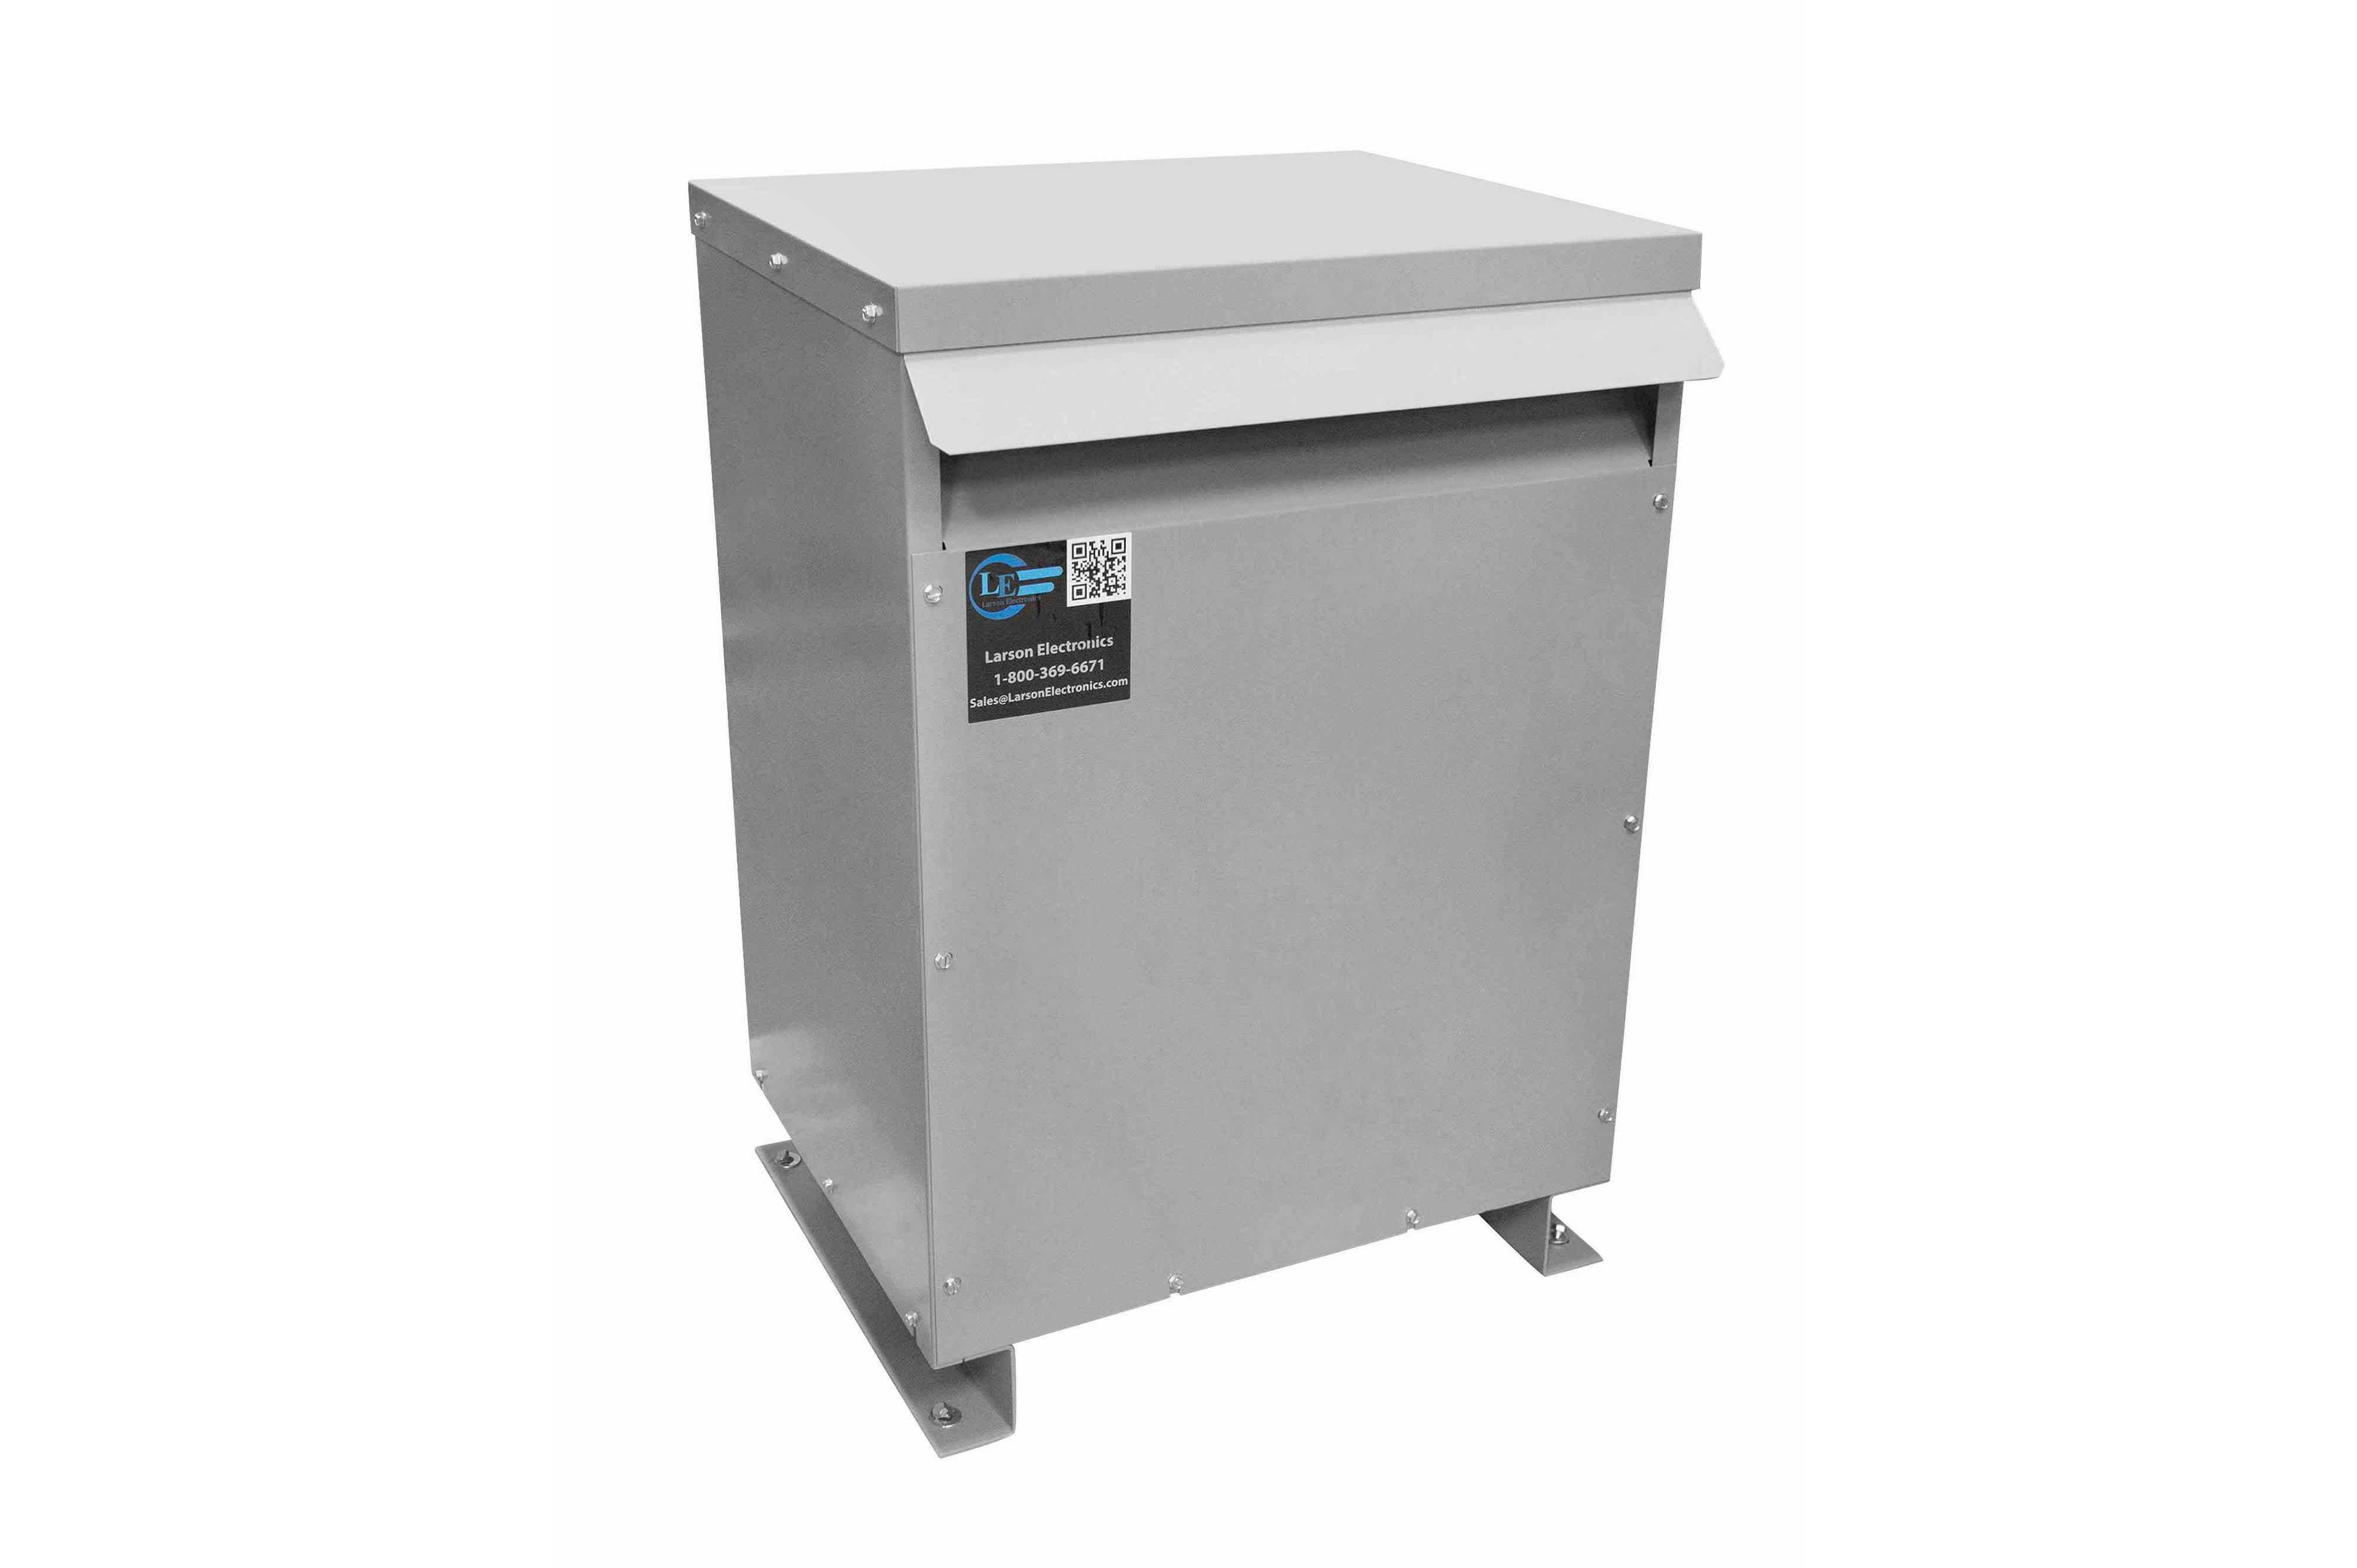 35 kVA 3PH Isolation Transformer, 460V Wye Primary, 208Y/120 Wye-N Secondary, N3R, Ventilated, 60 Hz